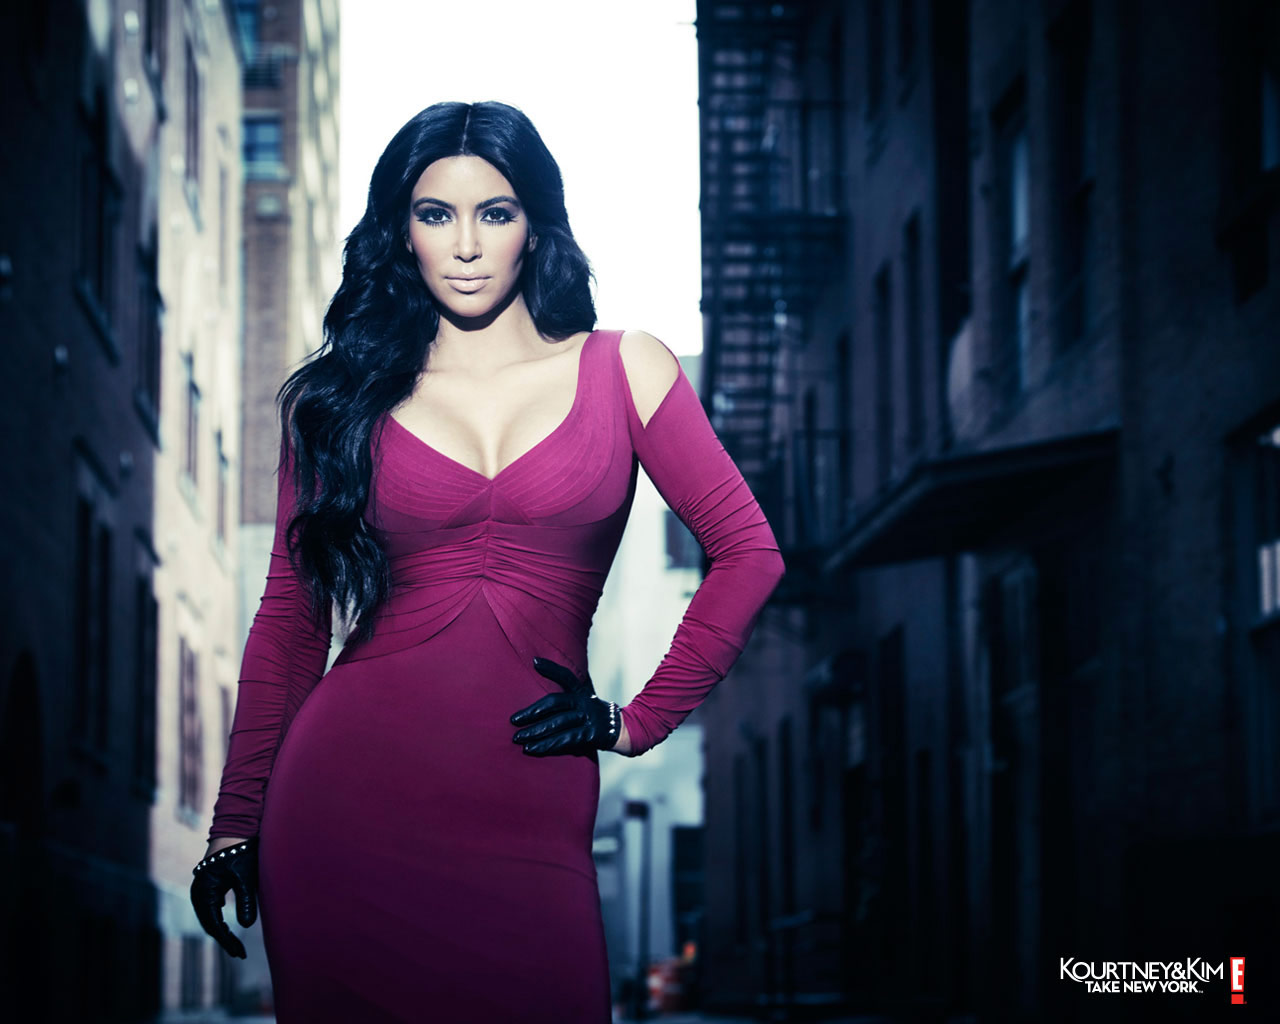 Kim Kardashian - Kourtney and Kim Take New York promo photo in a fuschia dress